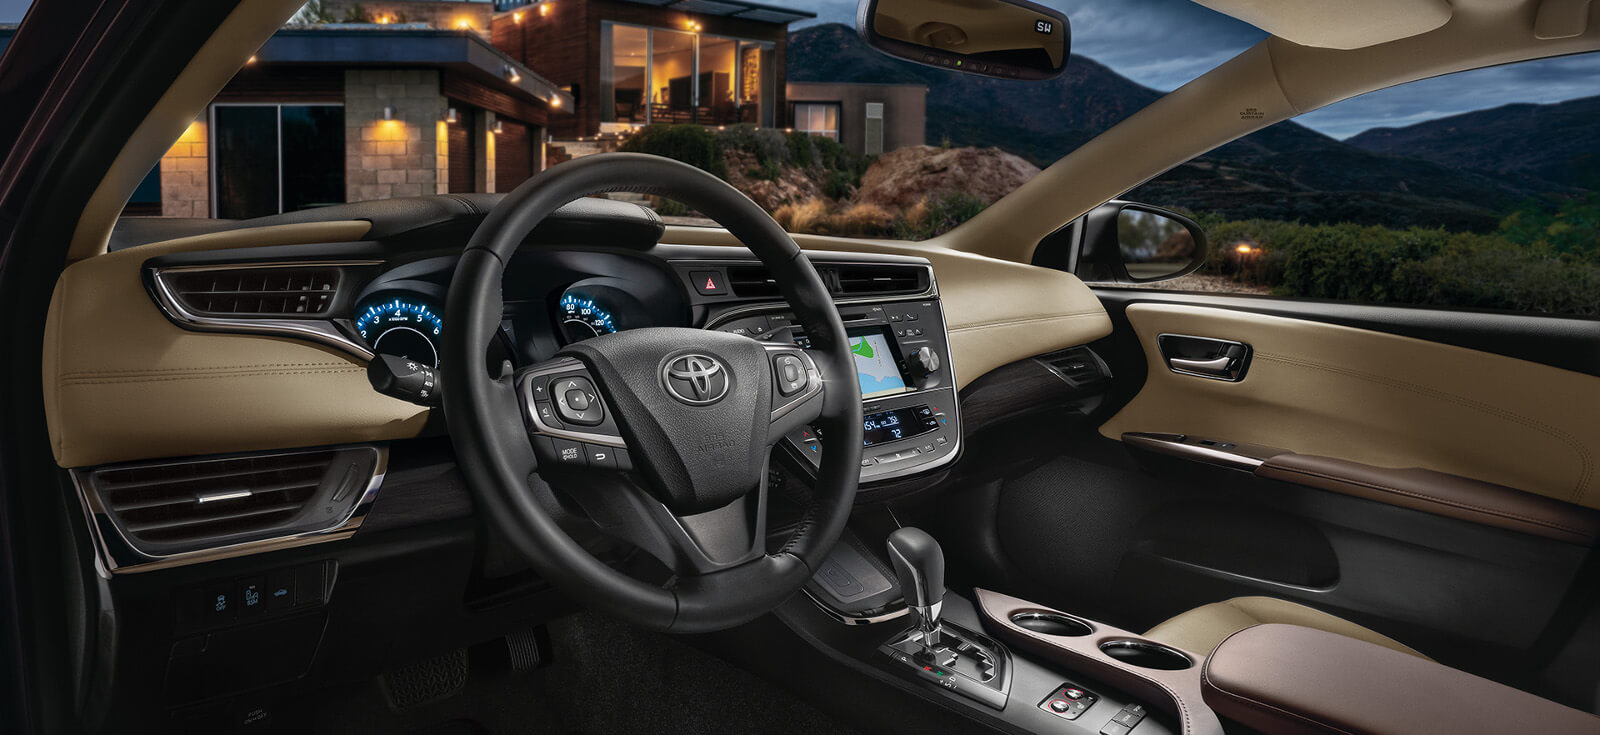 2017 Toyota Avalon Interior Cabin